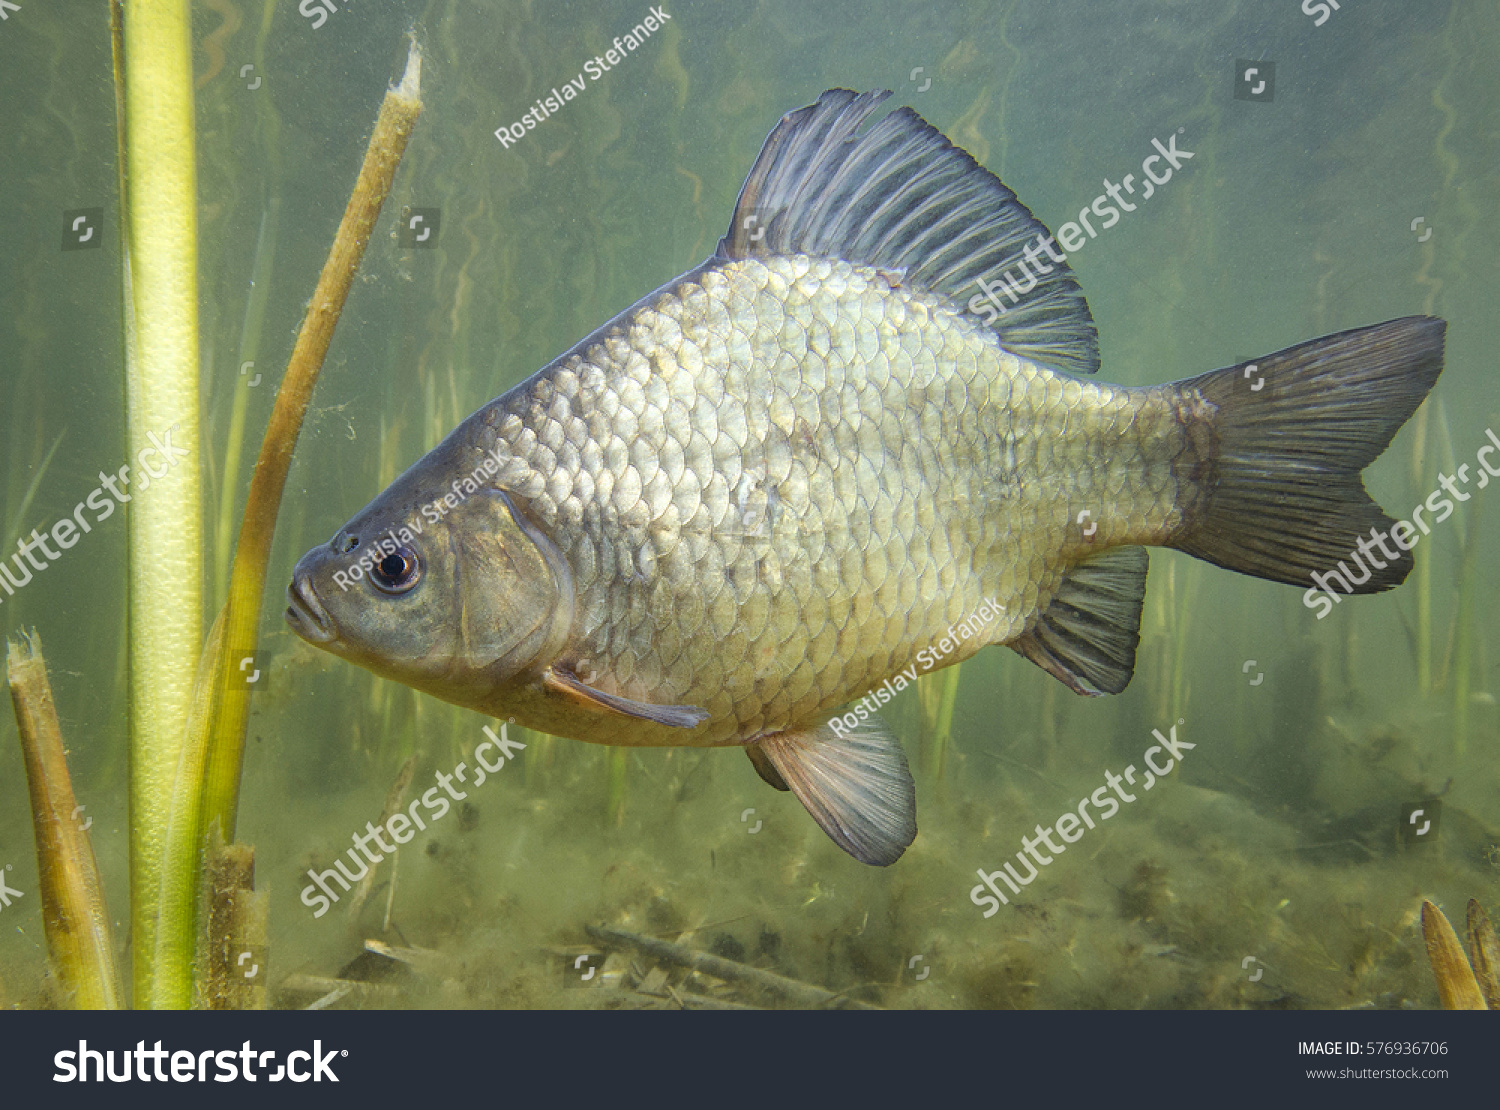 Freshwater fish crucian carp carassius carassius stock for Freshwater cleaner fish